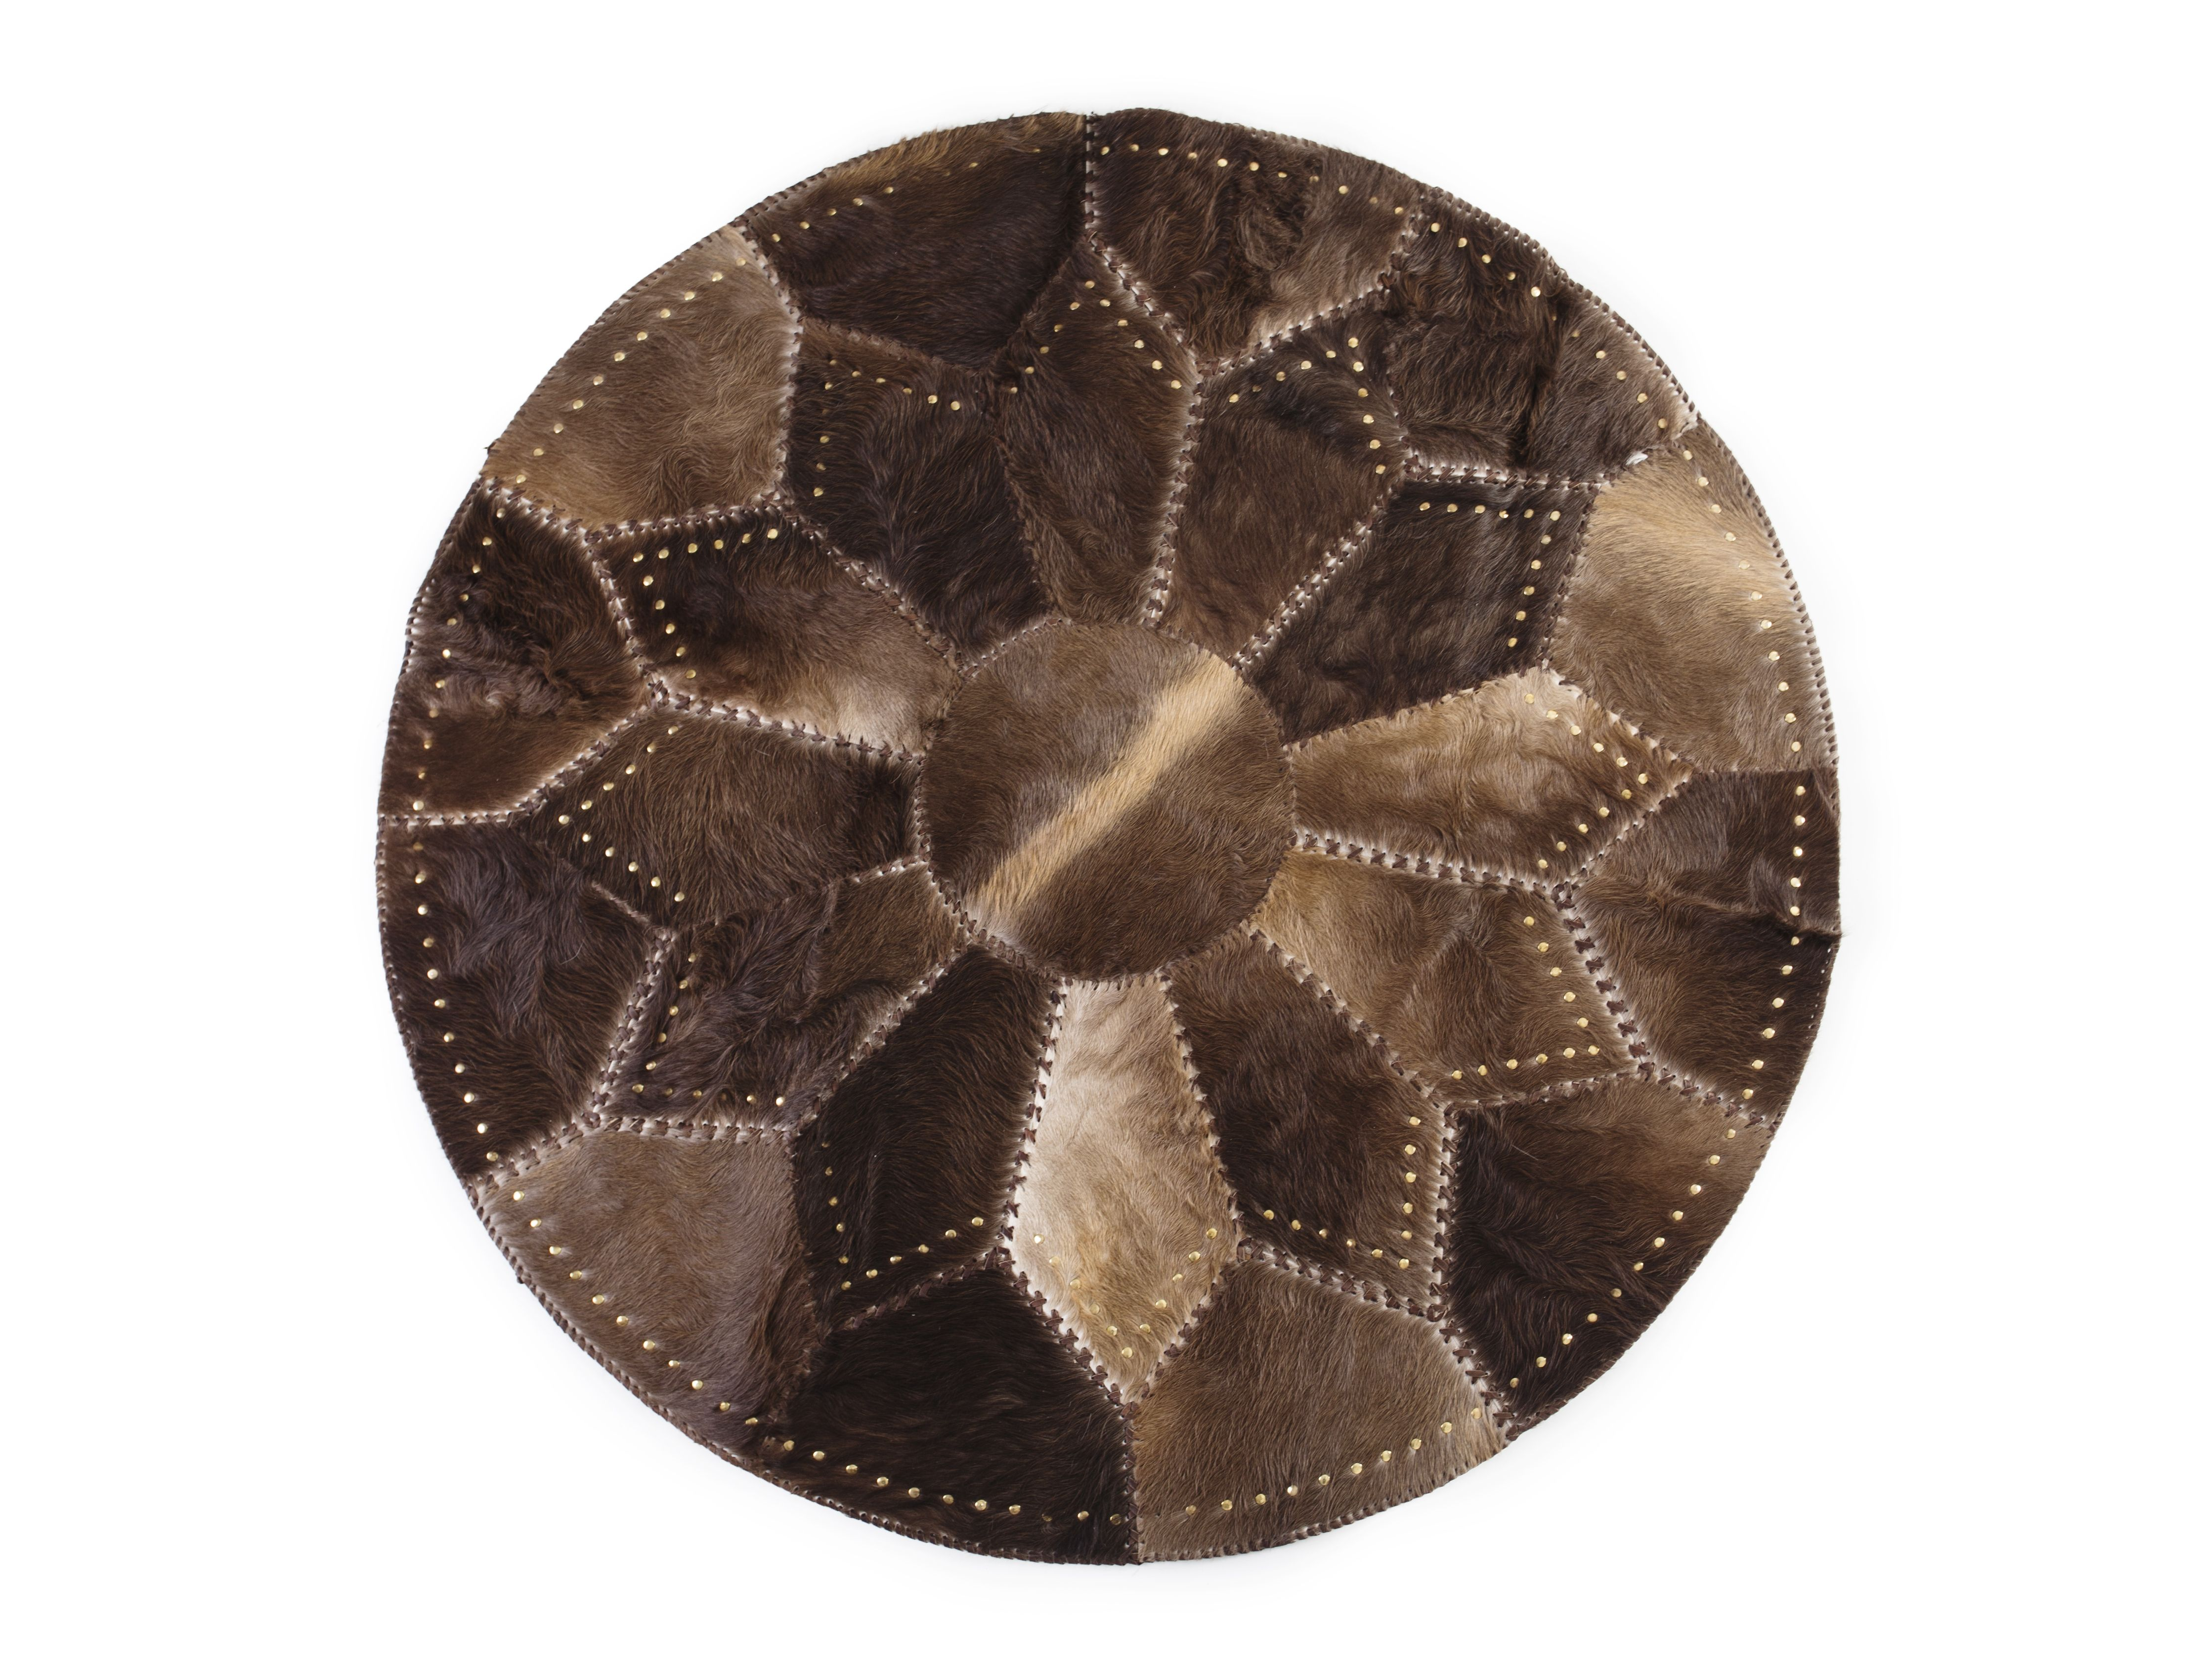 """Round Riveted and Taped Bottom Patchwork Area Rug, Hair-on-Hide, Europe Import, Hand Made, Hand Stitched 5'3"""" x 5'3"""""""